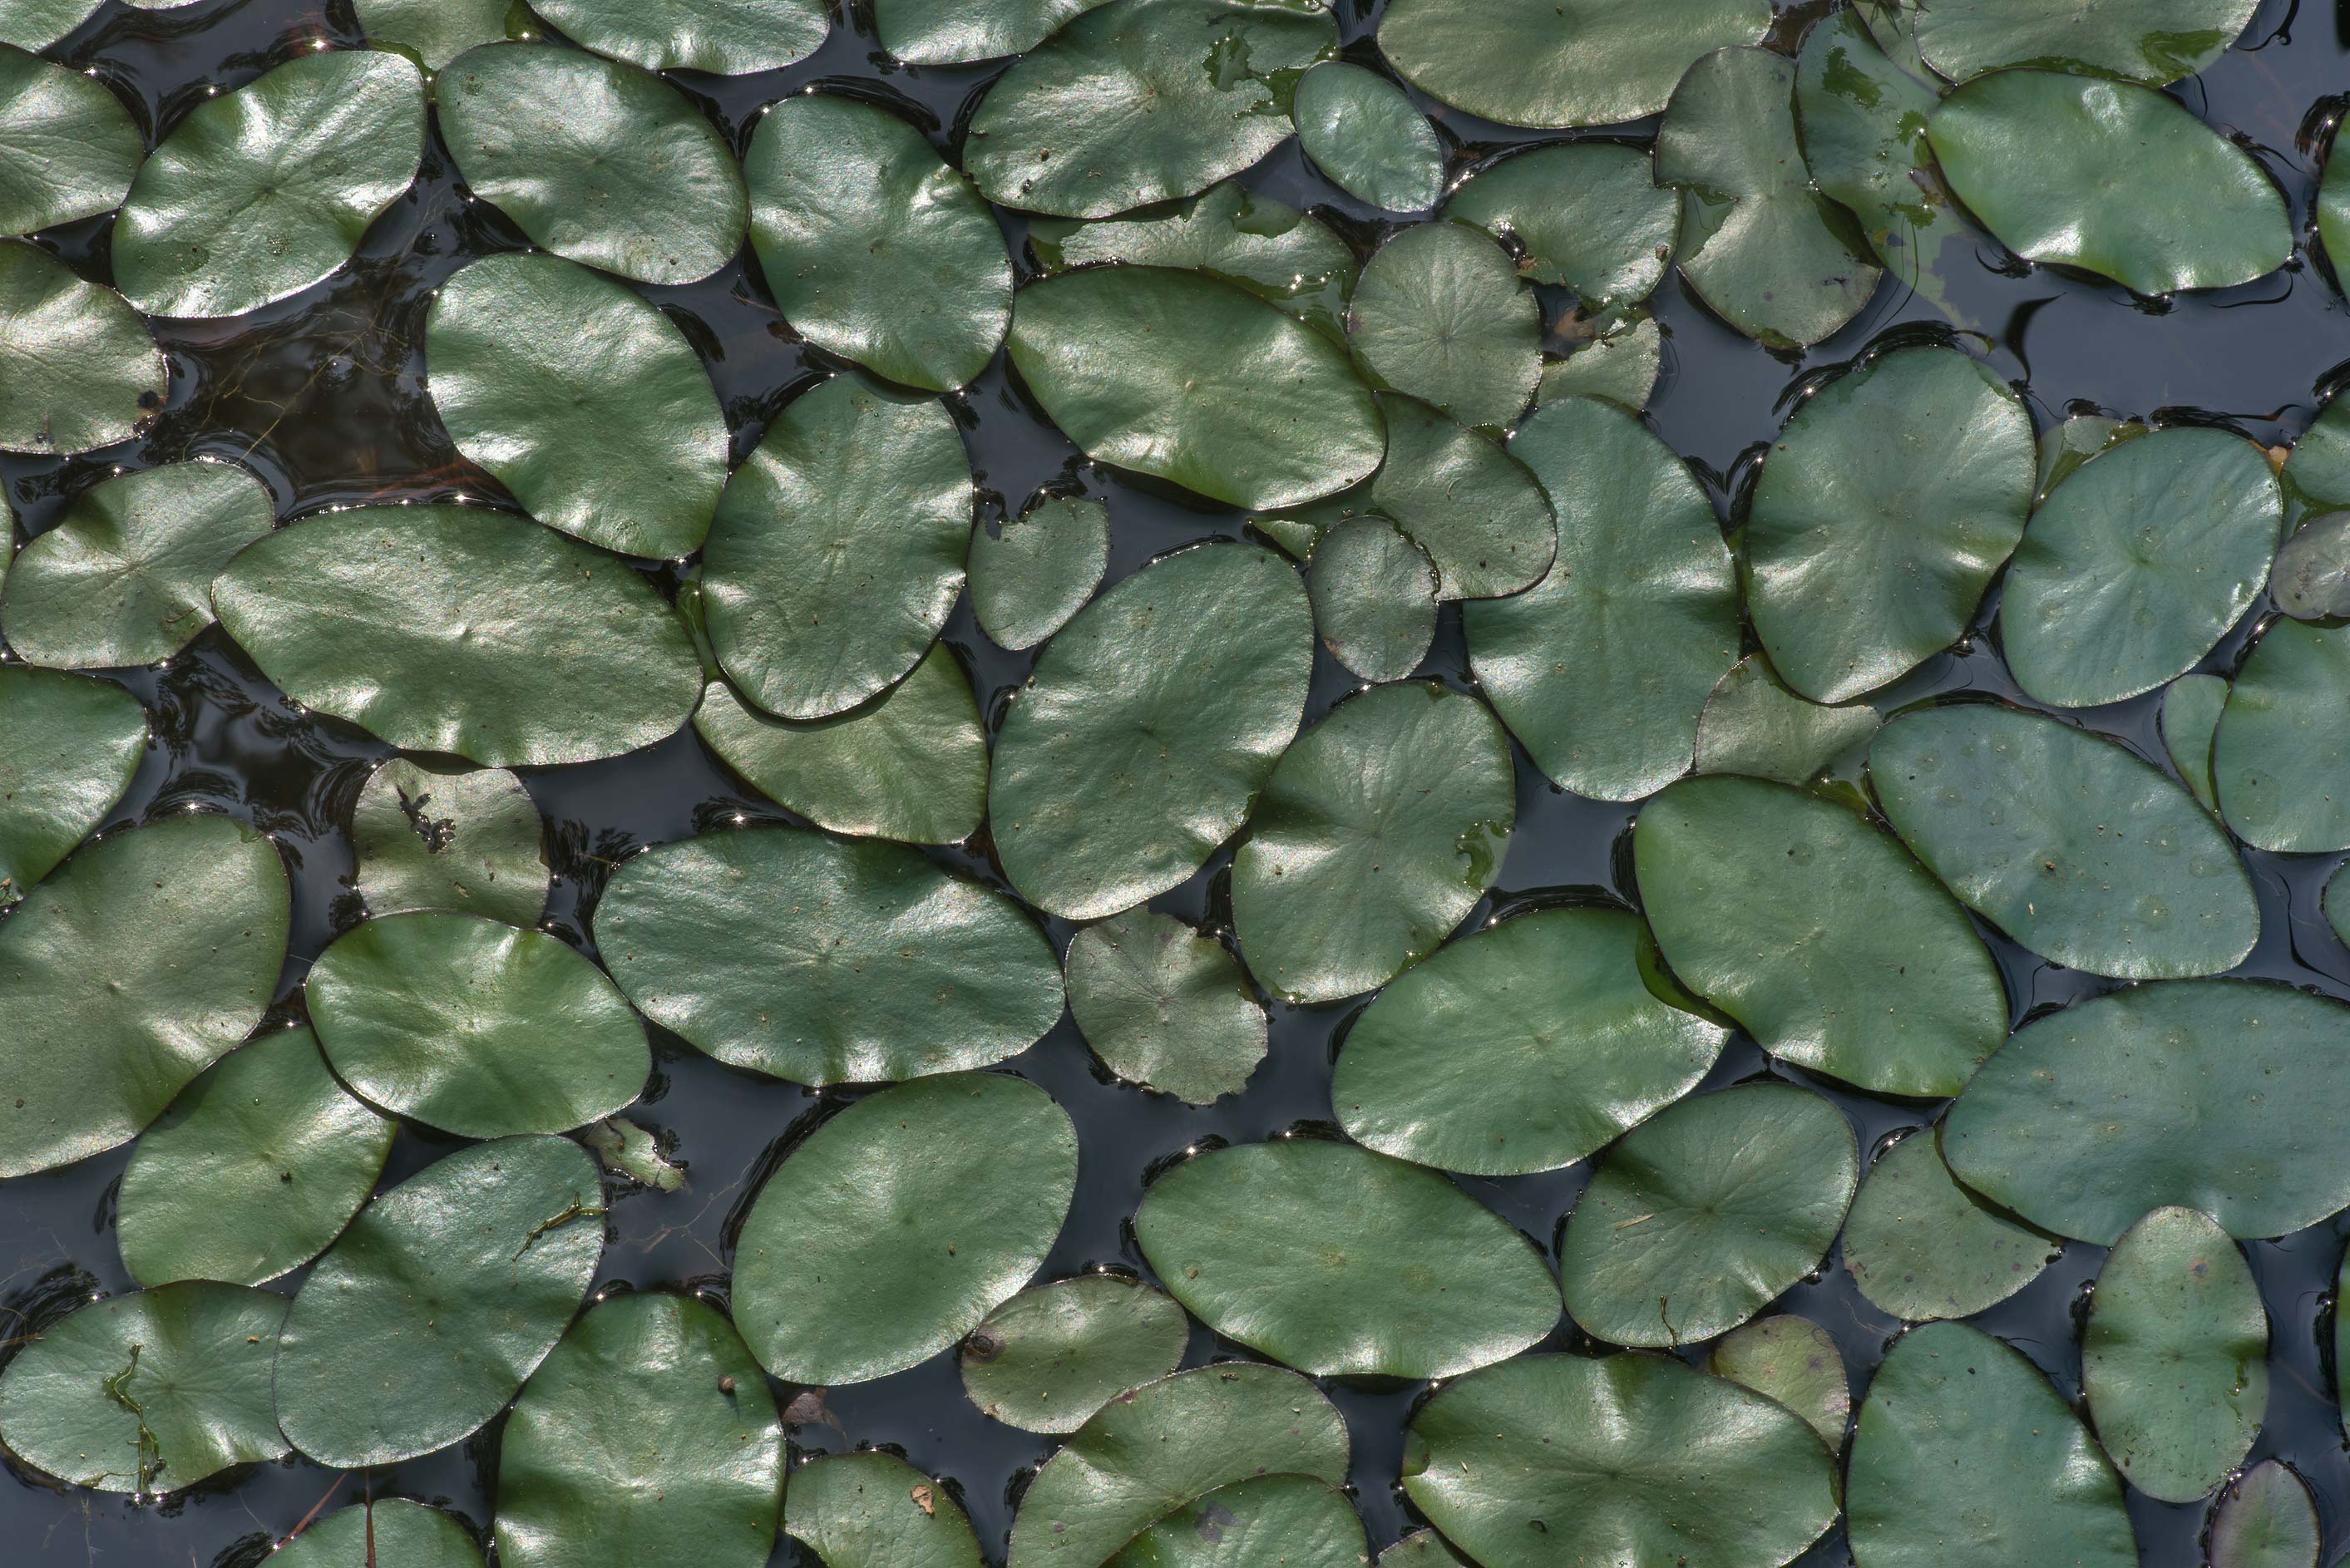 Floating oval leaves of an aquatic plant...National Forest near Richards. Texas